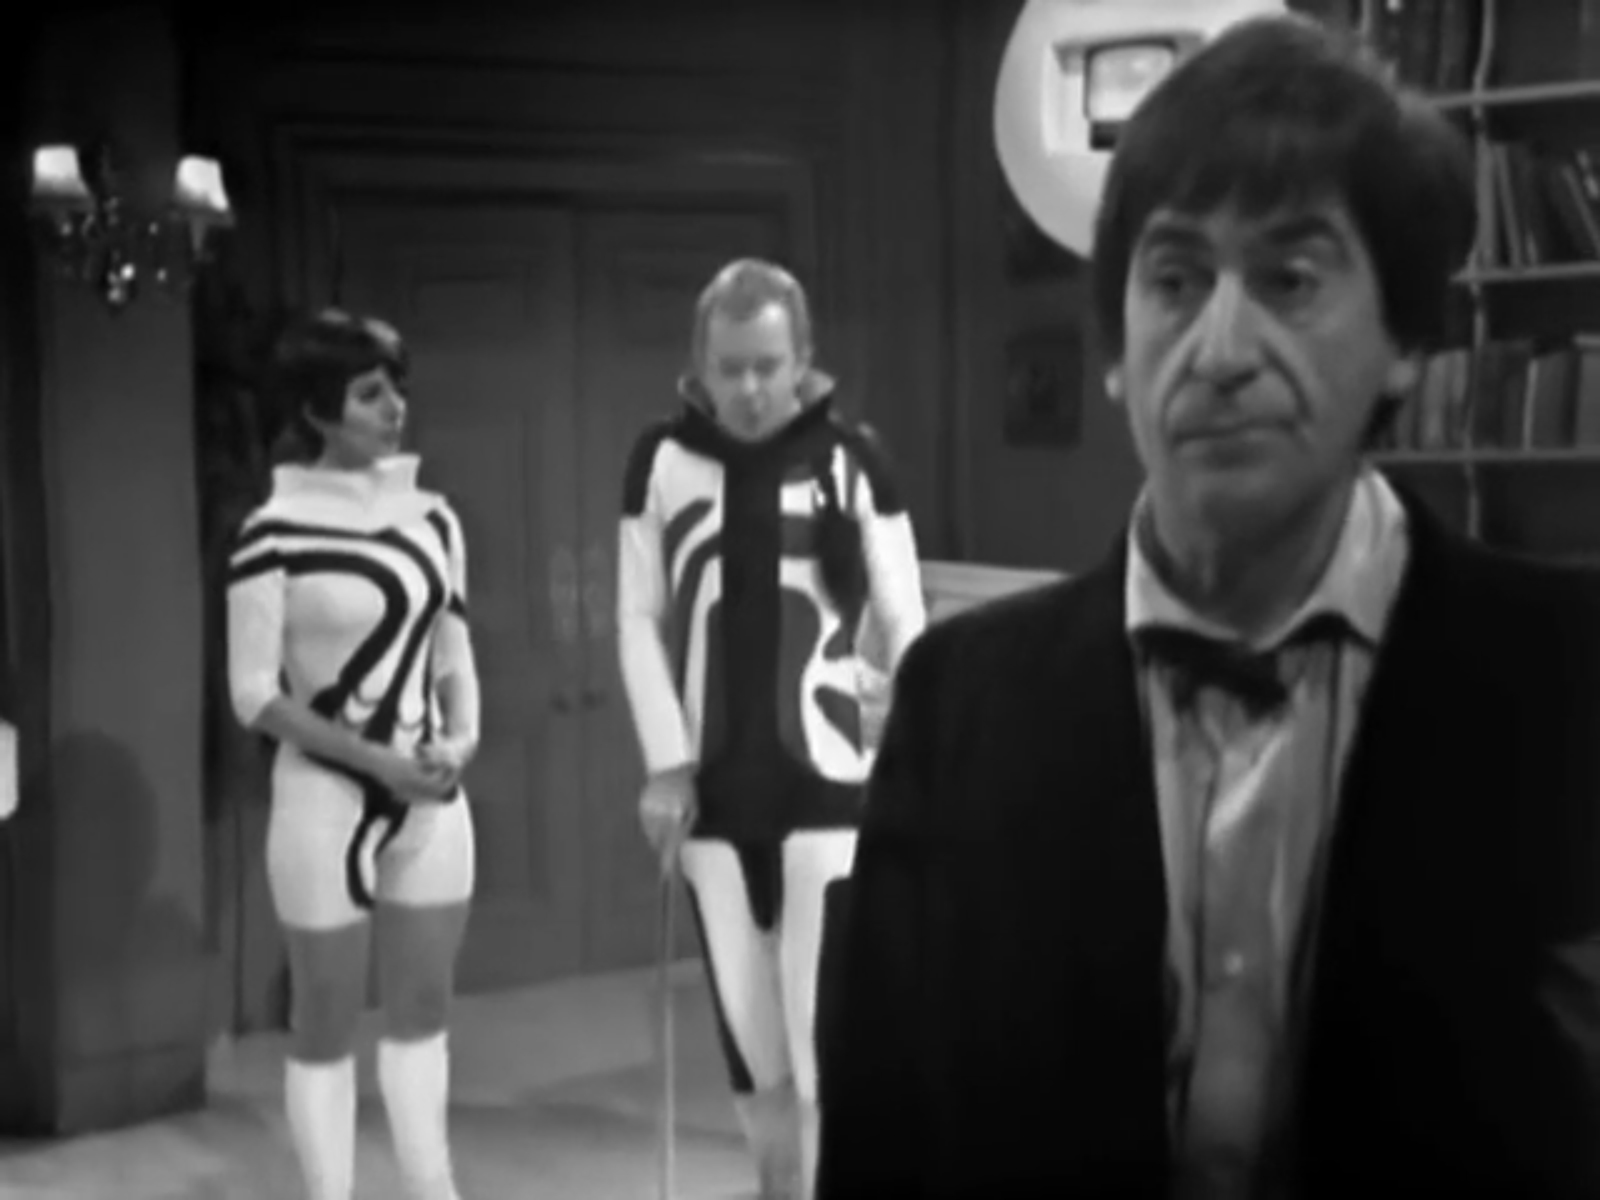 Patrick Troughton as the Second Doctor with Wendy Gifford as Miss Garrett and Peter Barkworth as Clent in The Ice Warriors